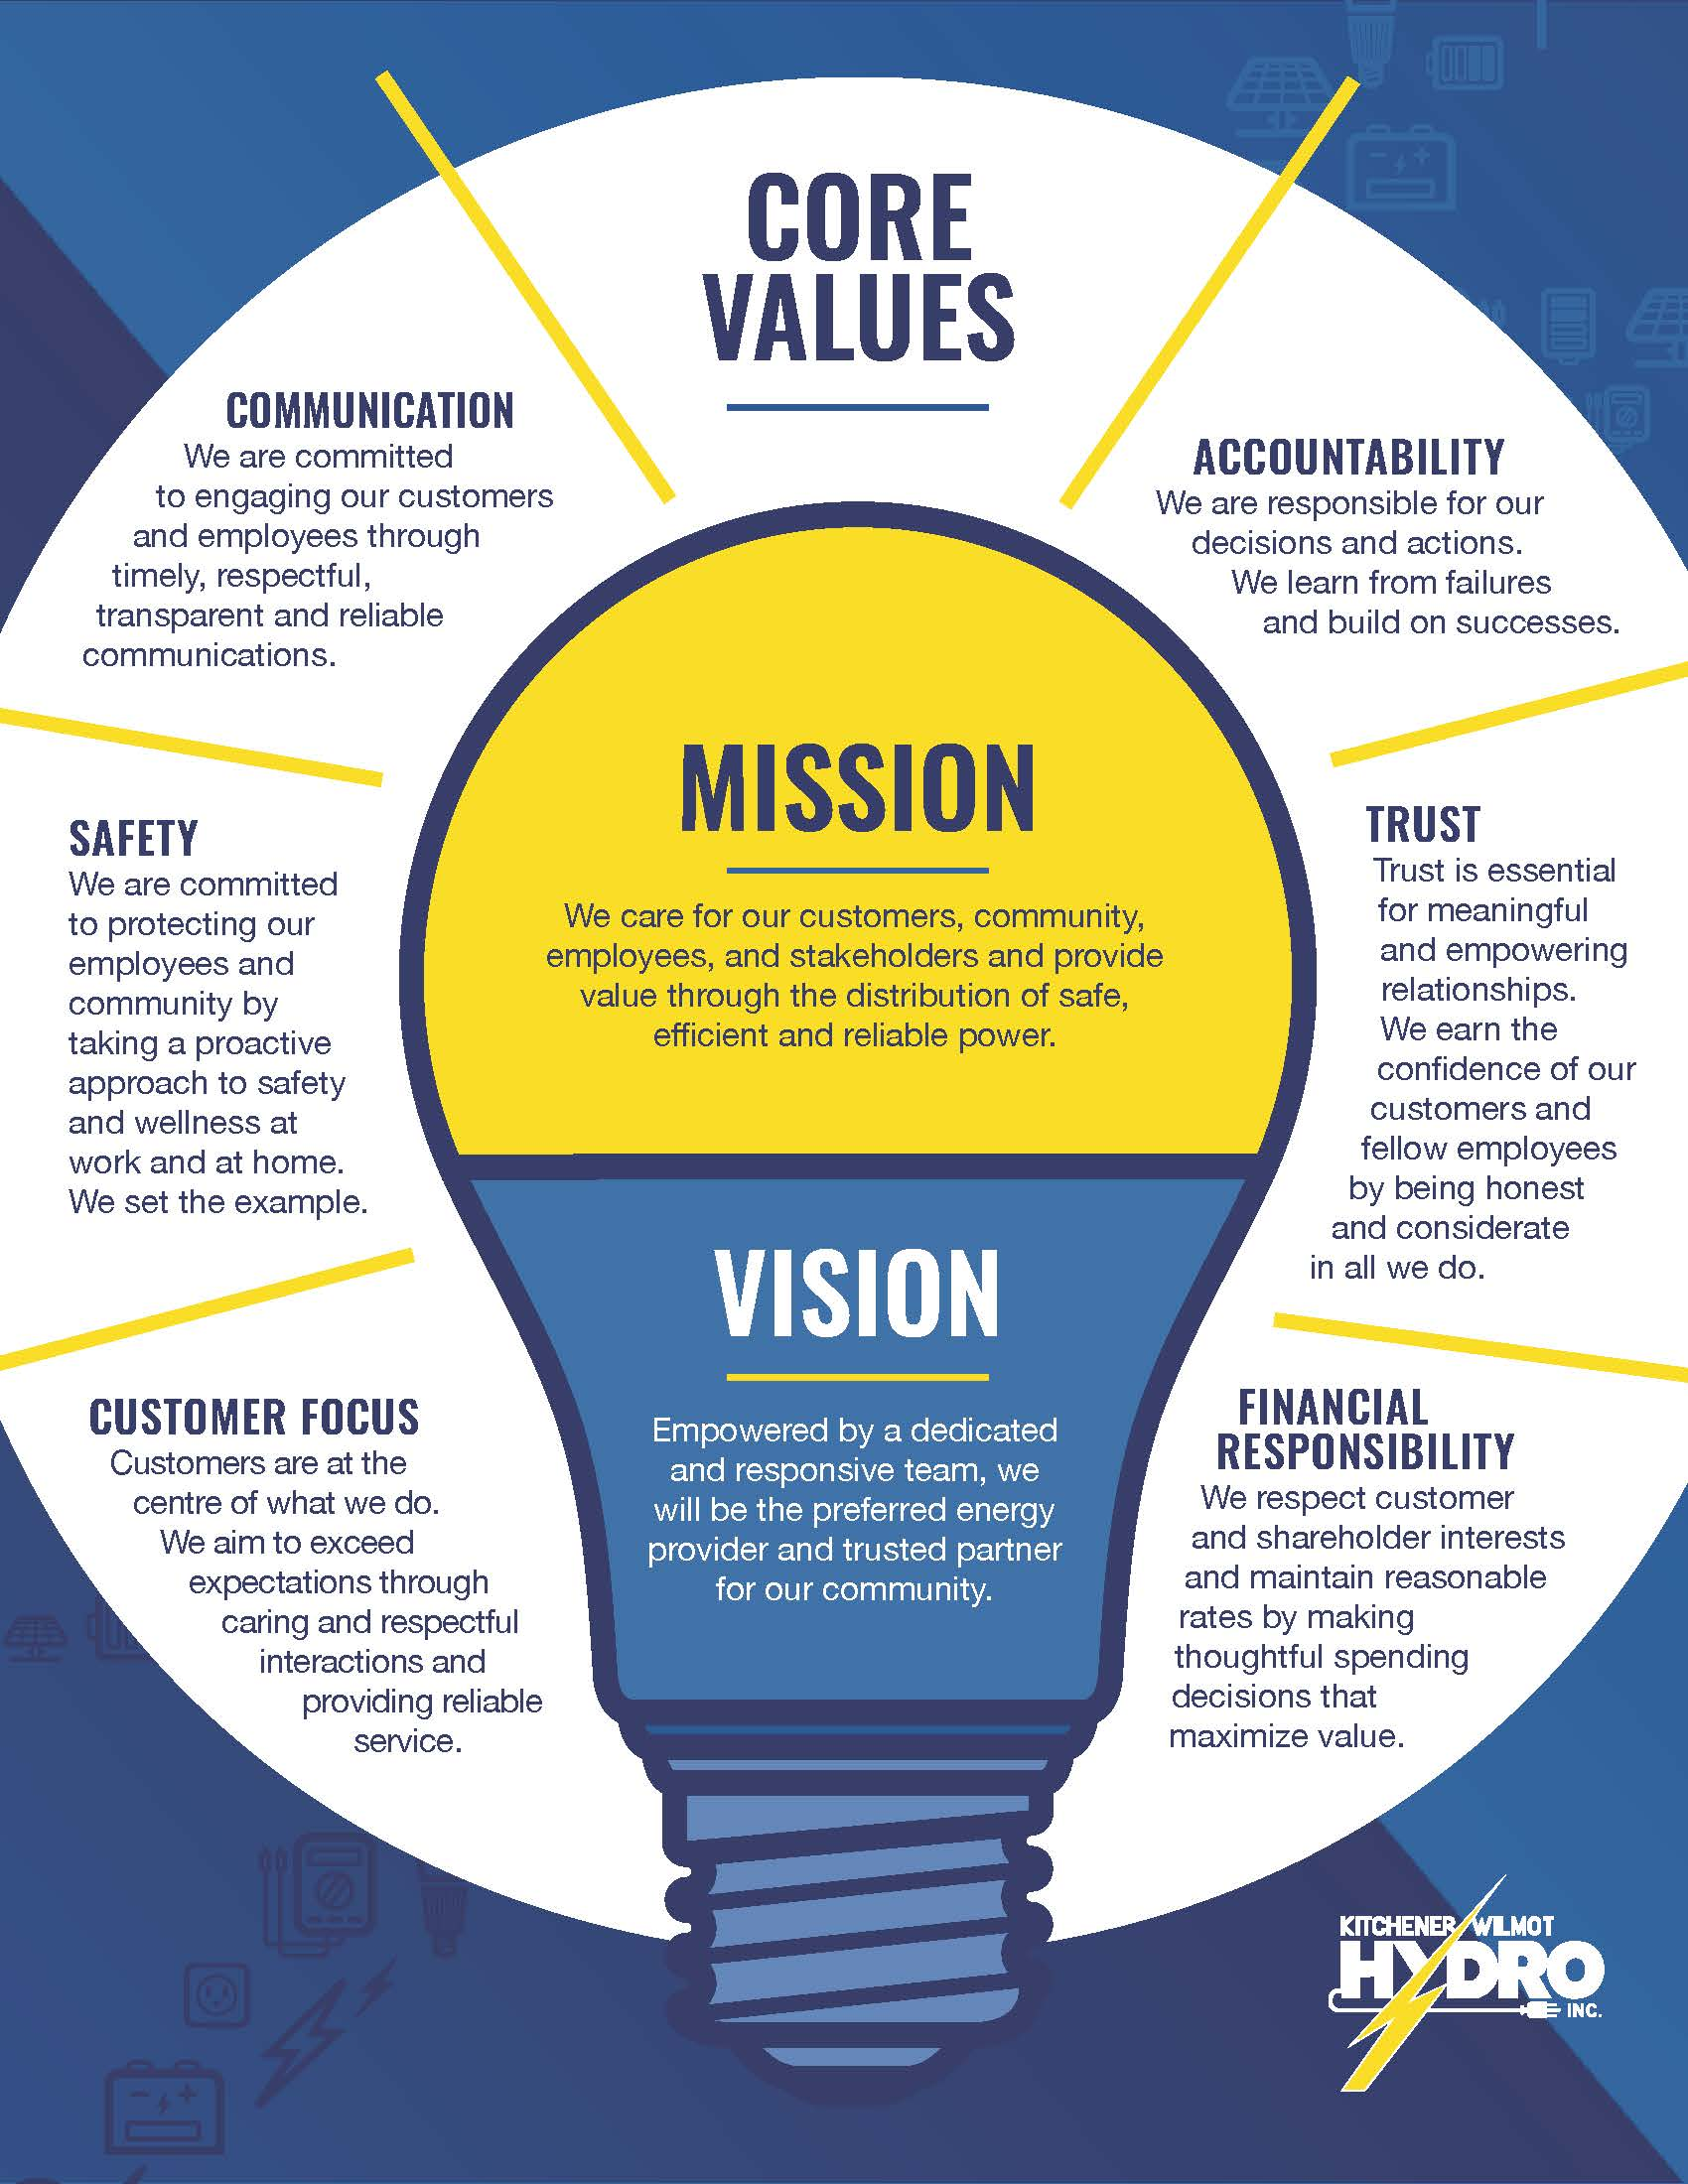 Graphic of Kitchener-Wilmot Hydro's Mission, Vision and Values. Mission and Vision are on light bulb split in half vertically, with the Mission on top half on a yellow background, and the Vision is underneath on a blue background. The core values surround the light bulb inside yellow lines that represent light illuminating from the bulb.